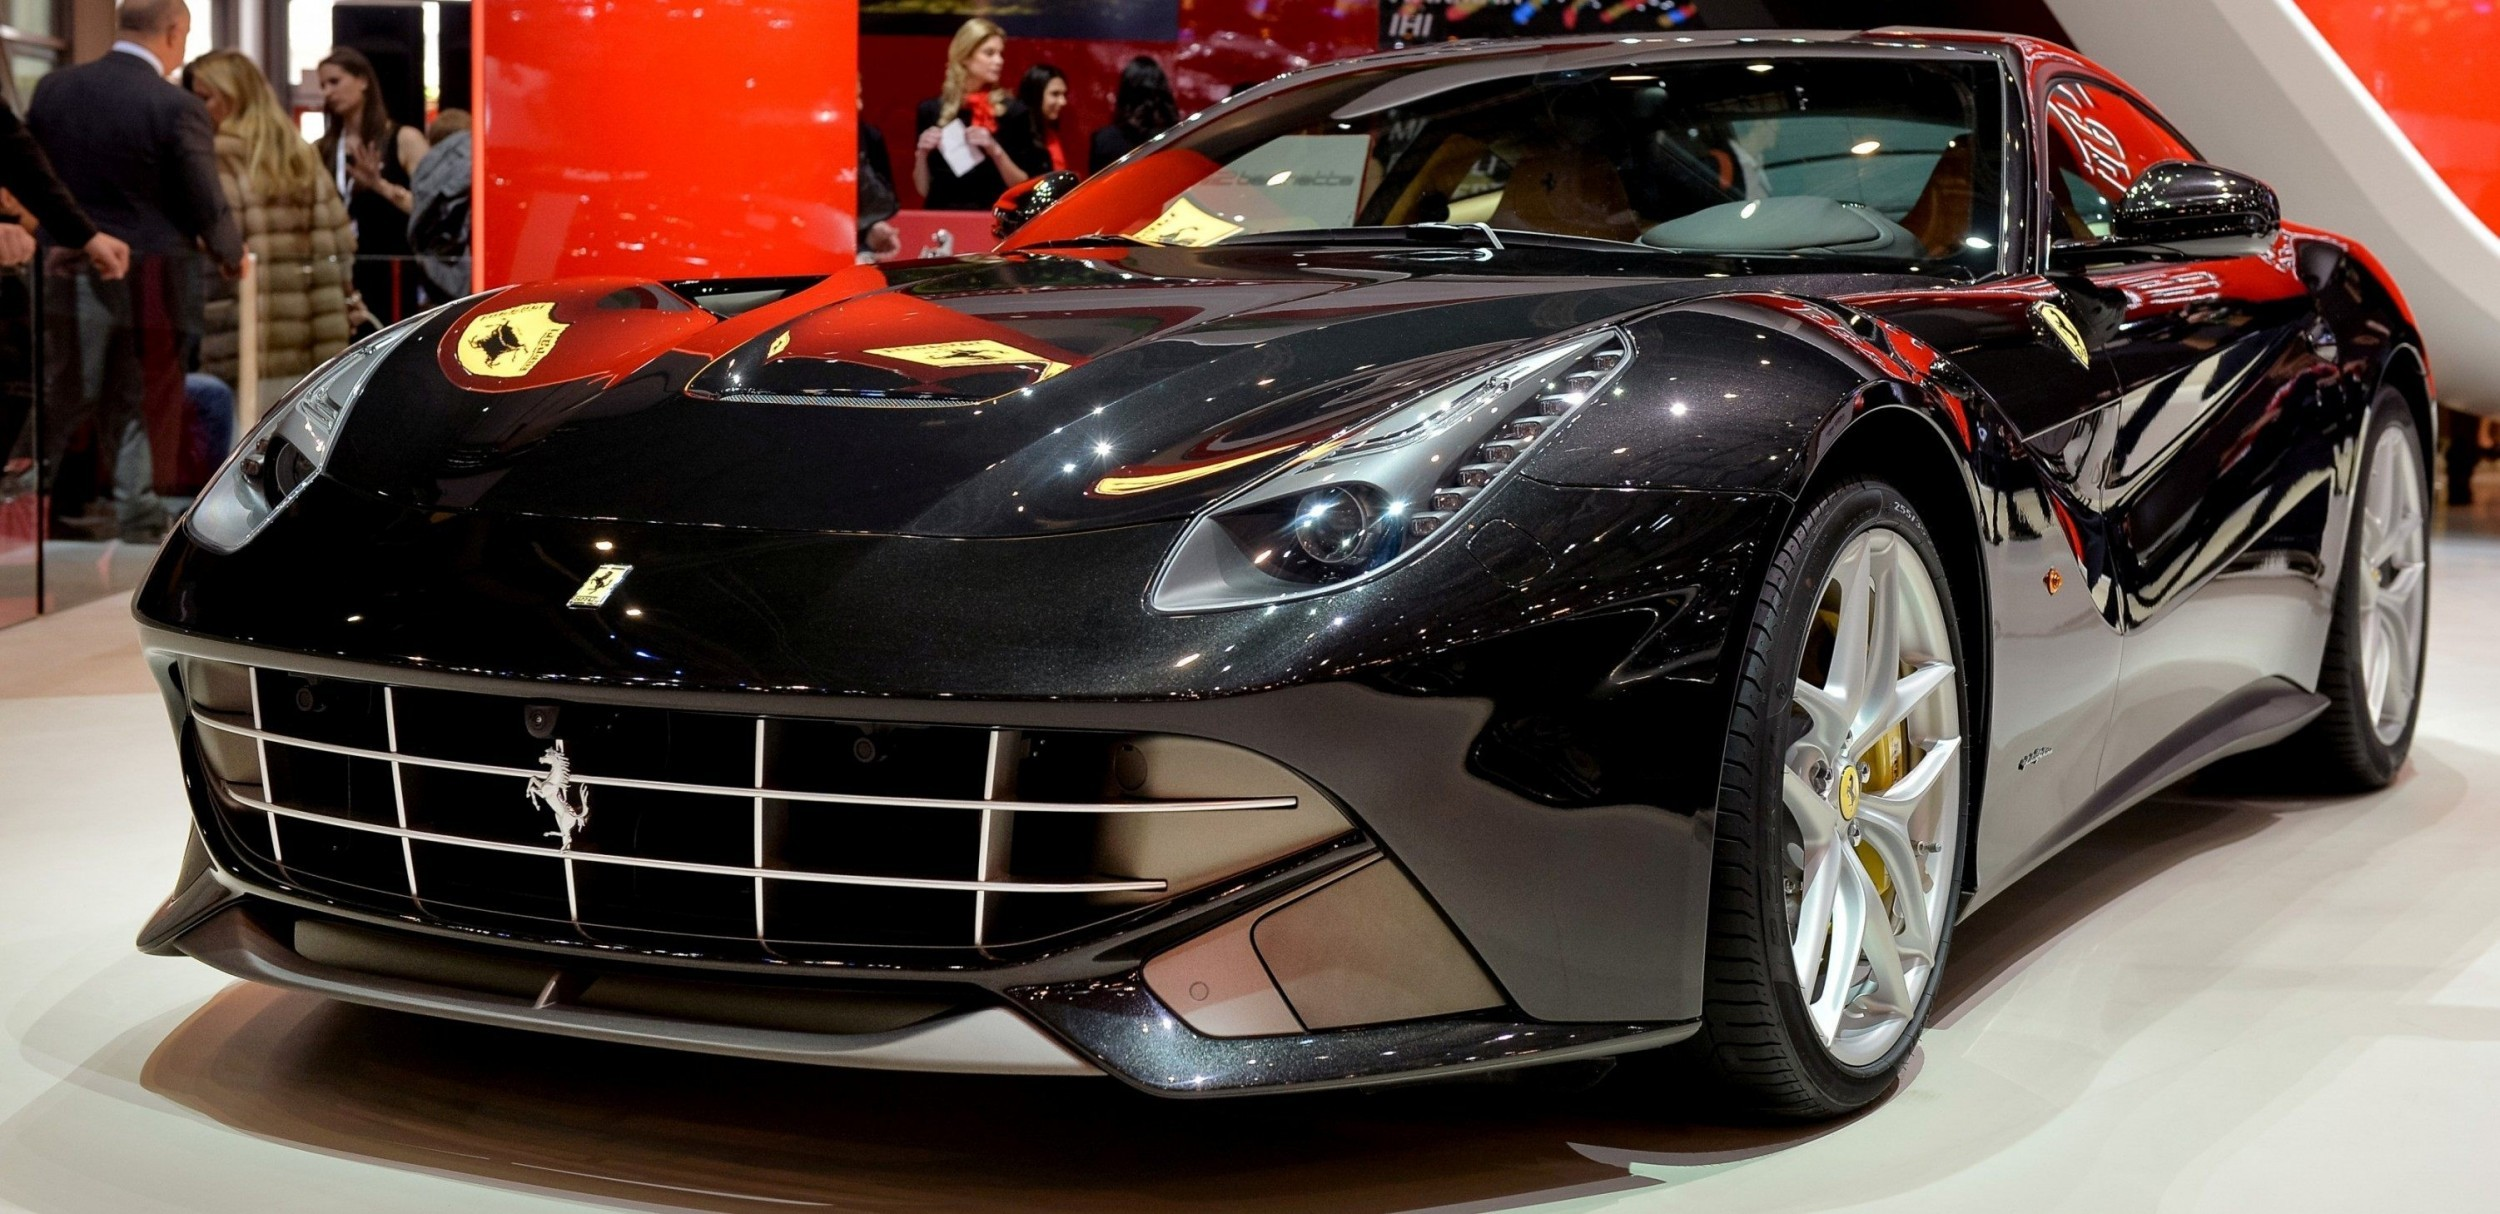 Geneva 2014 ShowFloor -- Ferrari California T, 458 Speciale and F12 Looking Brilliant 12